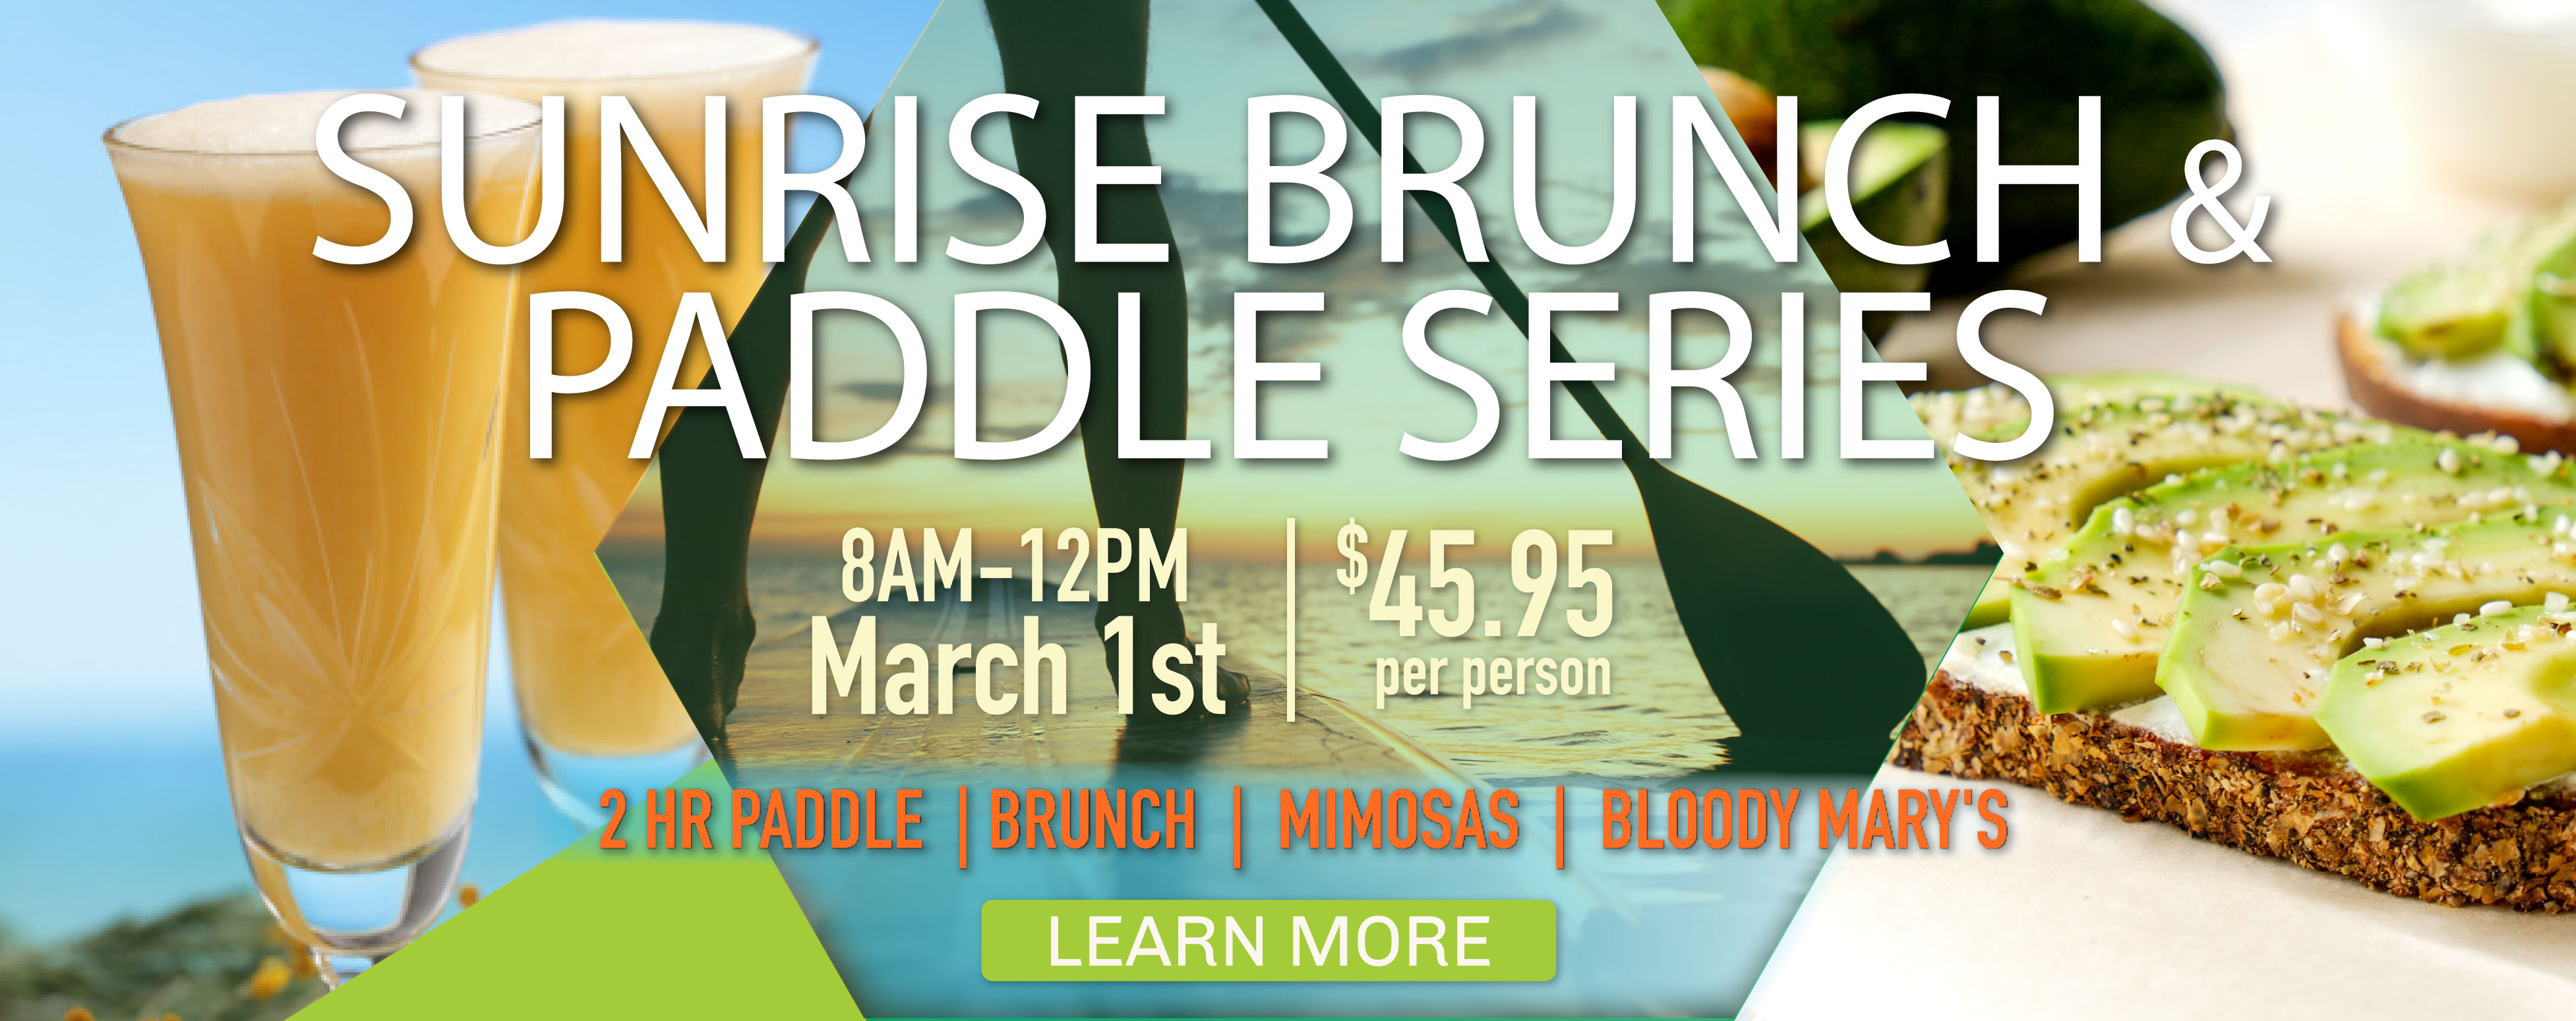 Whiskey Creek Brunch and Paddle Series